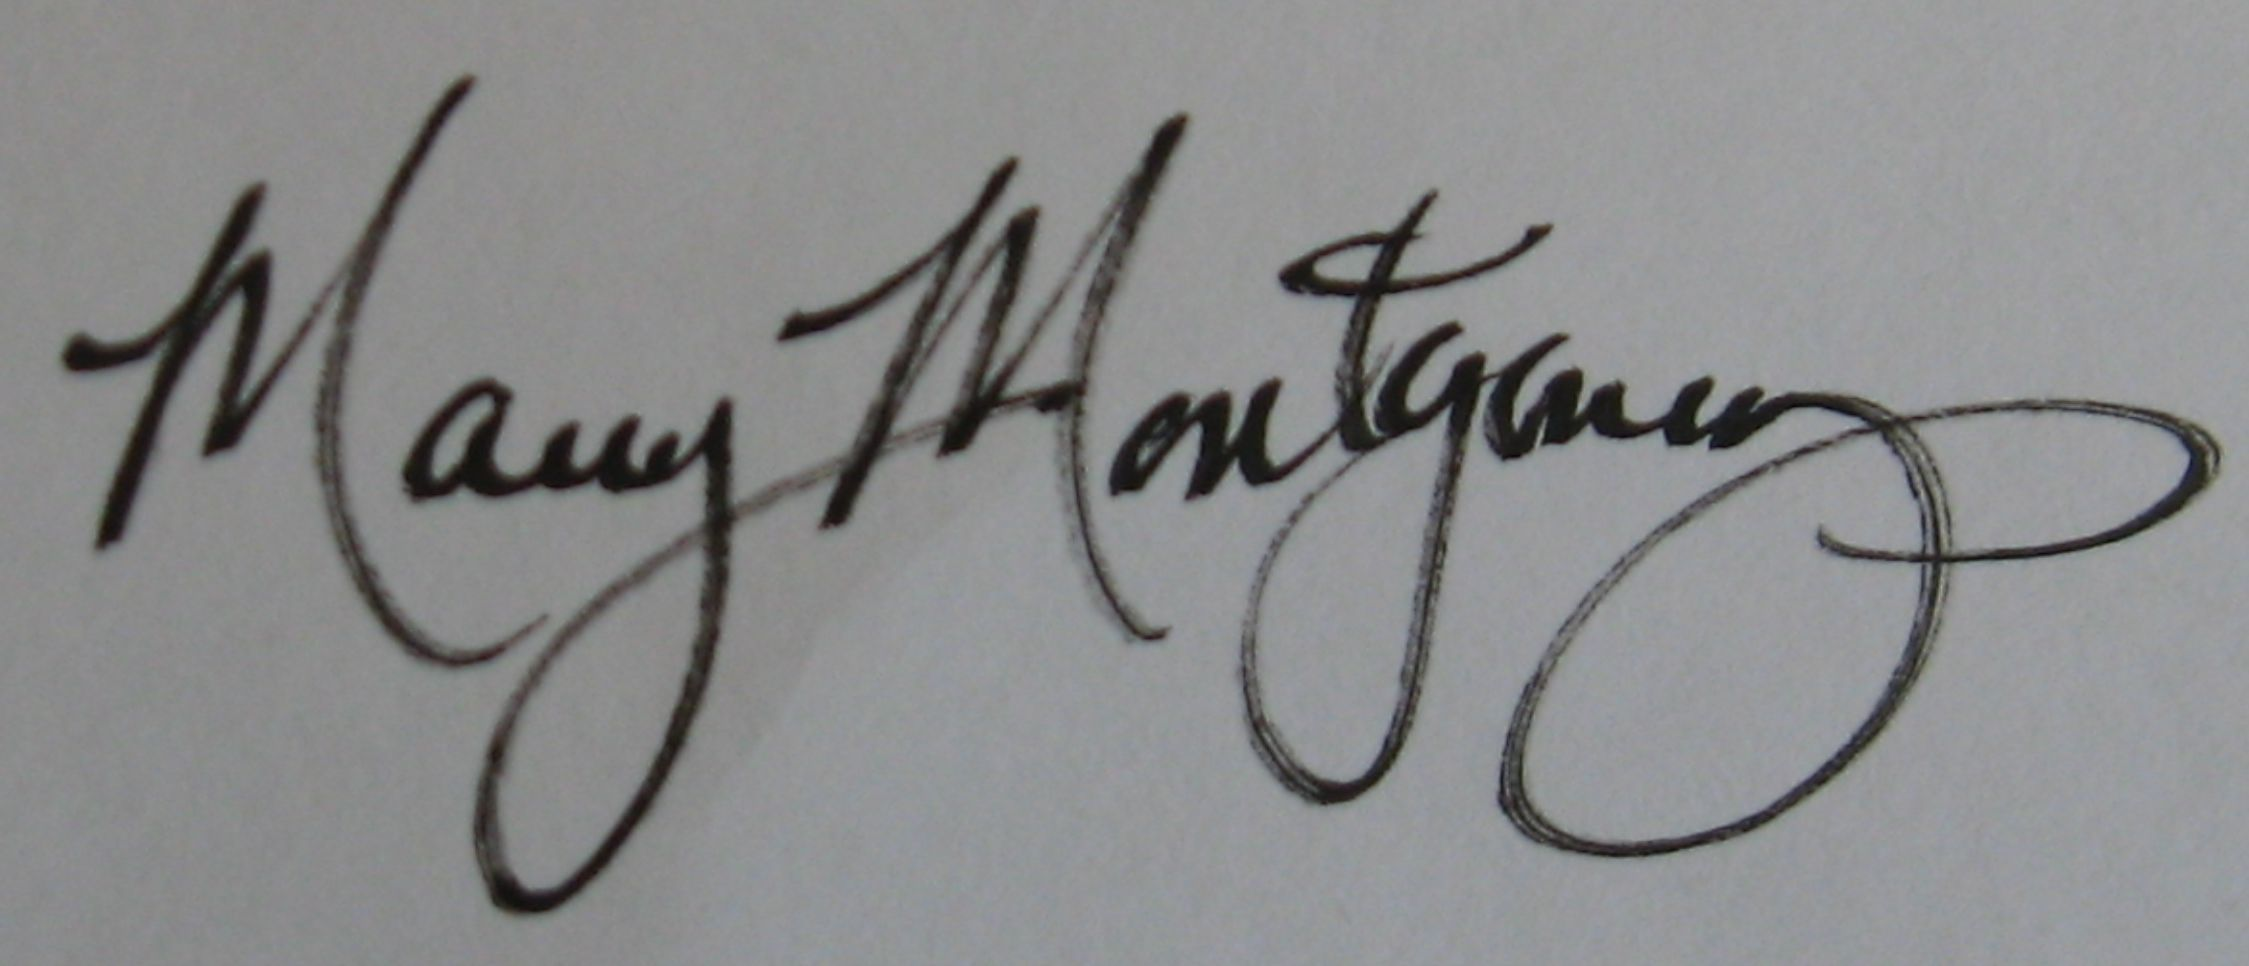 Mary Montgomery's Signature